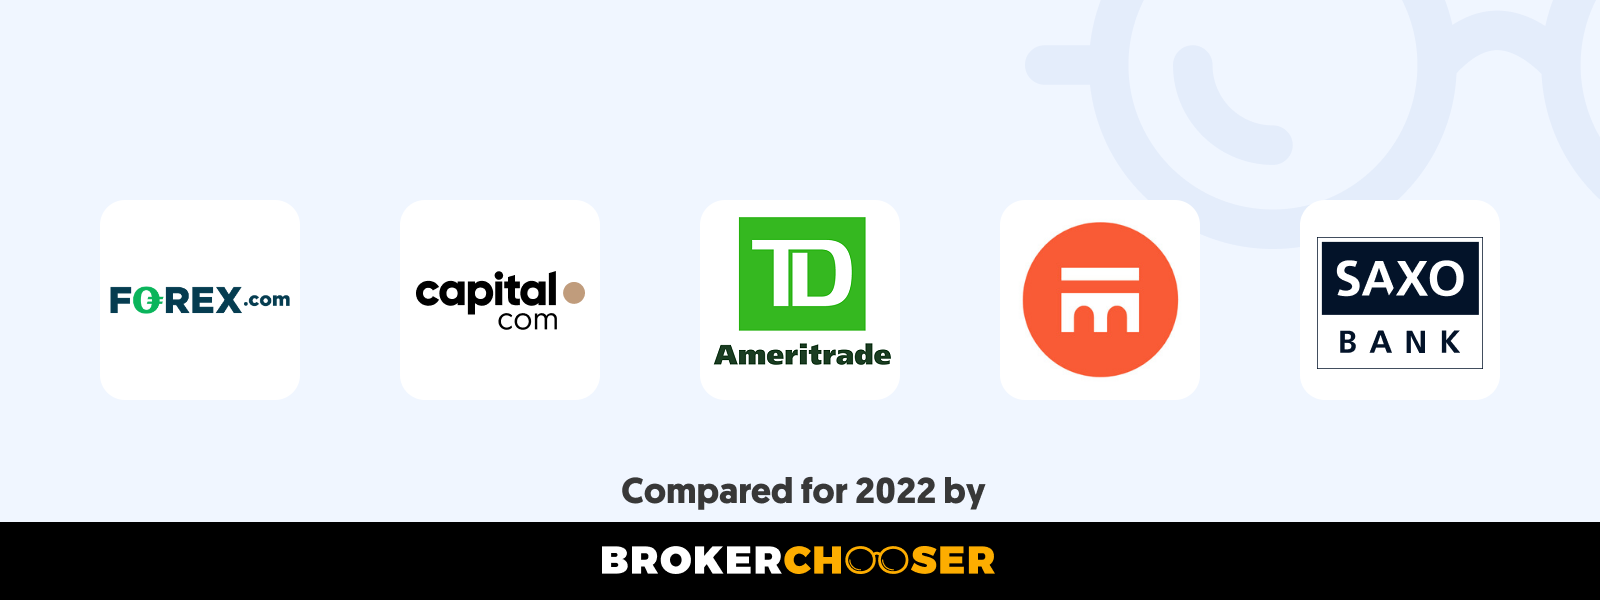 Best forex brokers for beginners in Thailand in 2021